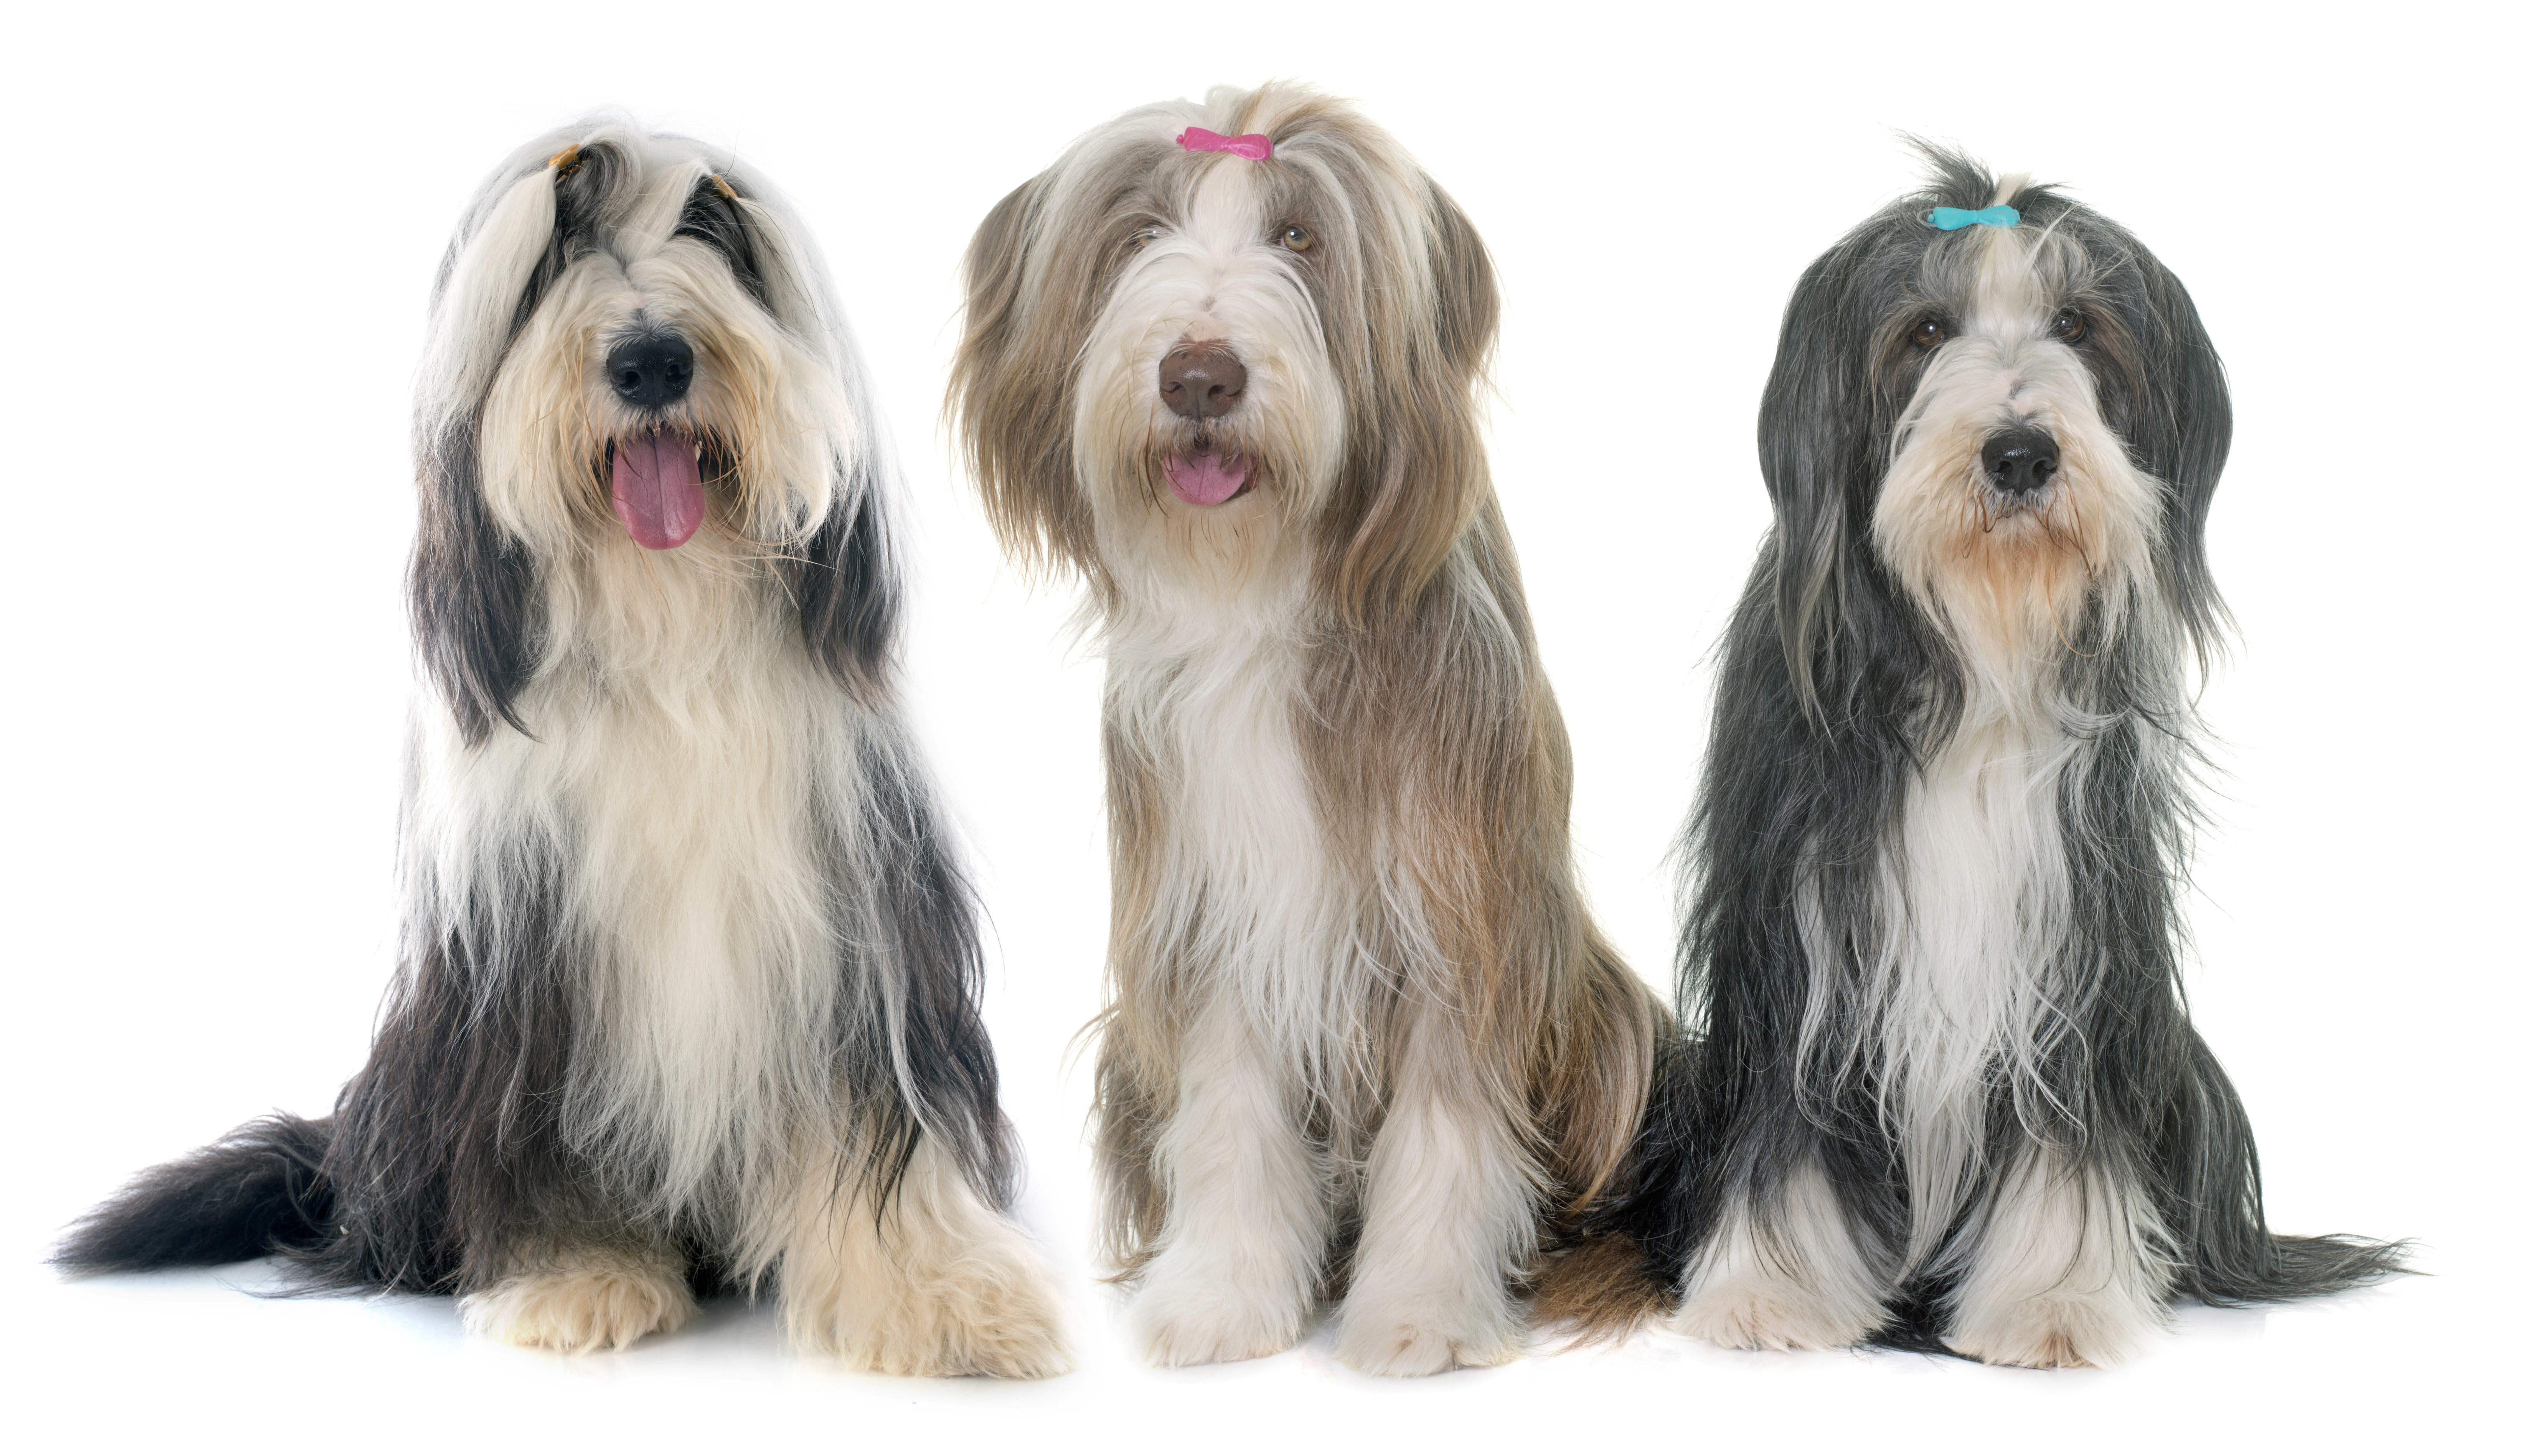 Three Bearded Collies sitting in front of a white background